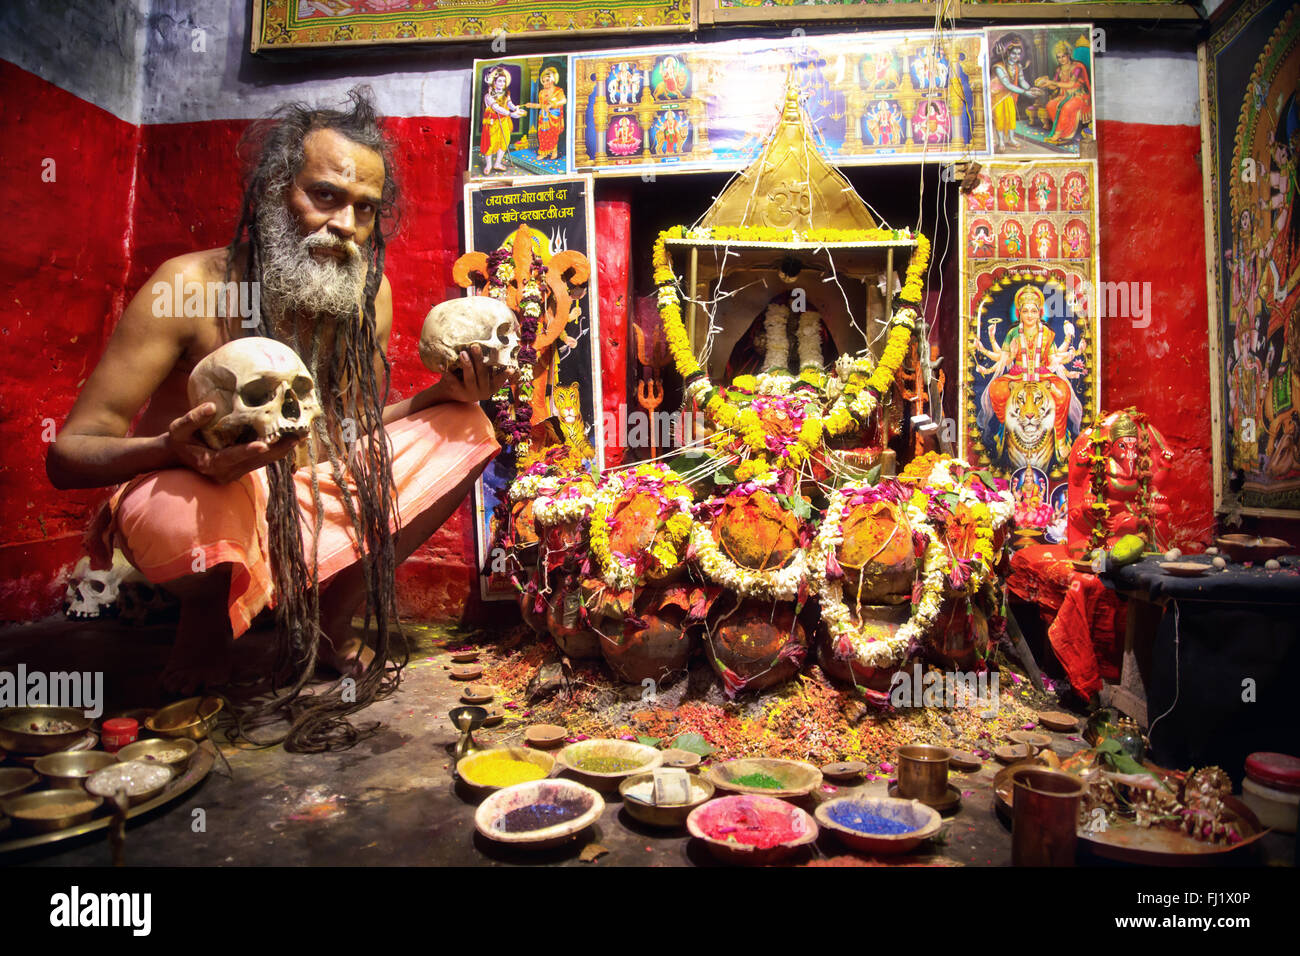 Portrait of Aghori cannibal sadhu holy man in front of decorated temple in Varanasi, India - Stock Image